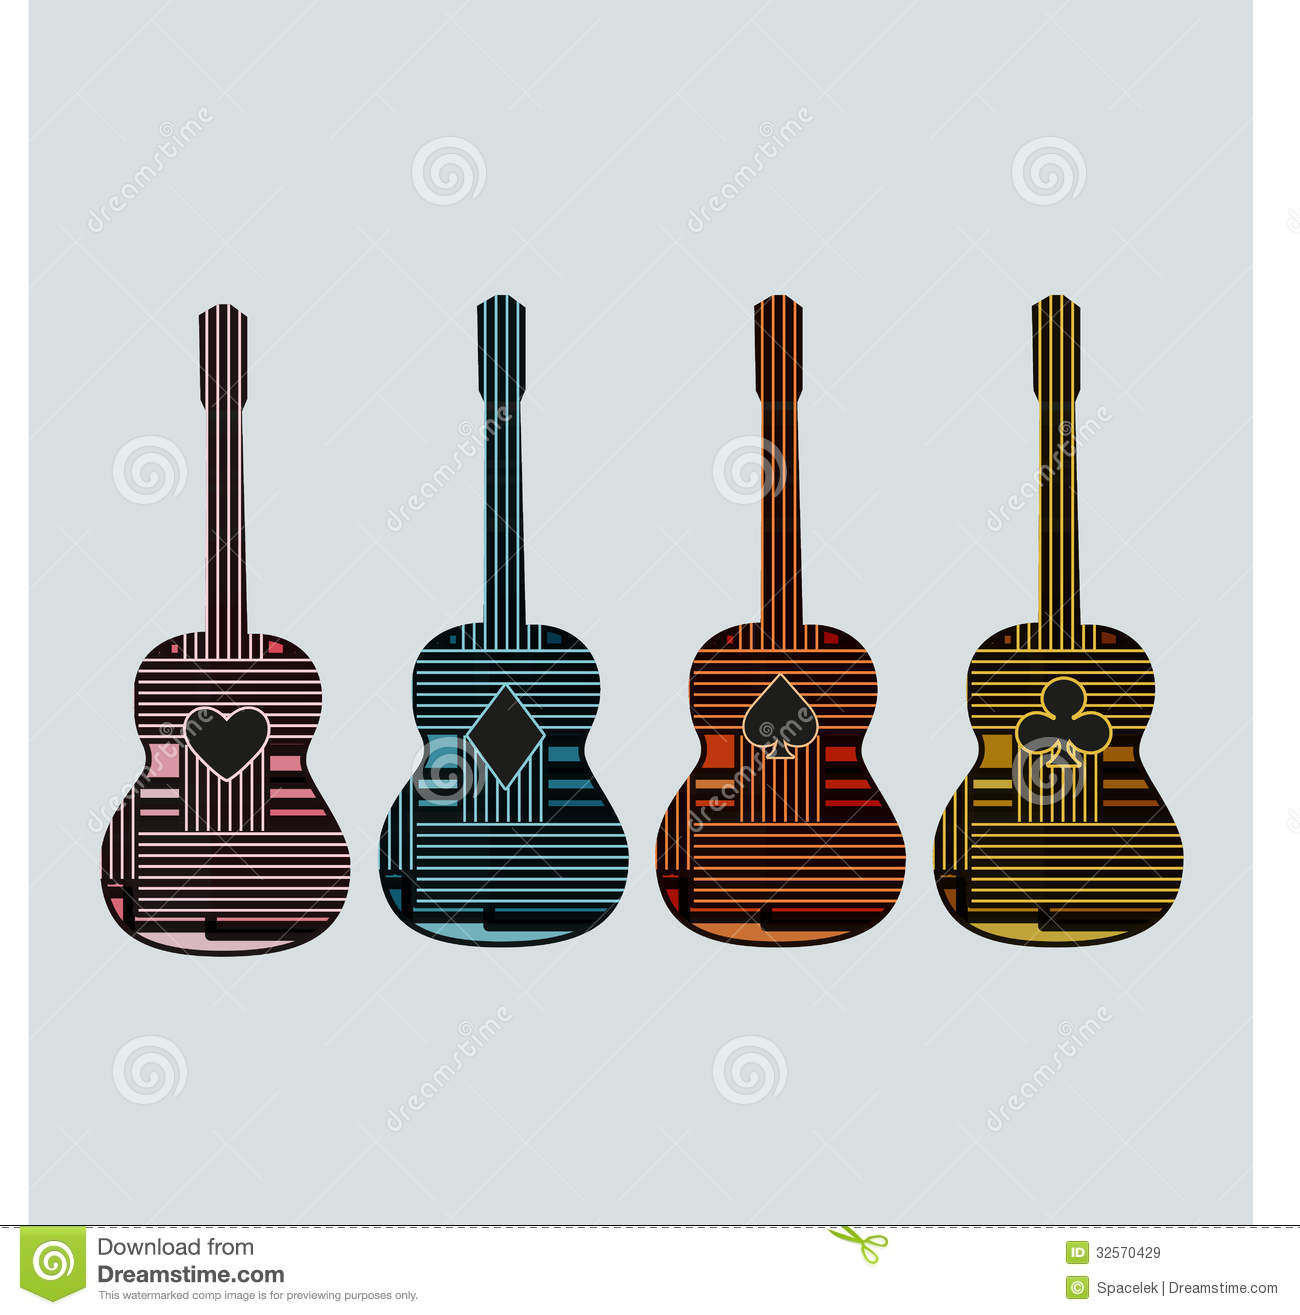 guitar graphic art6 royalty free stock images image